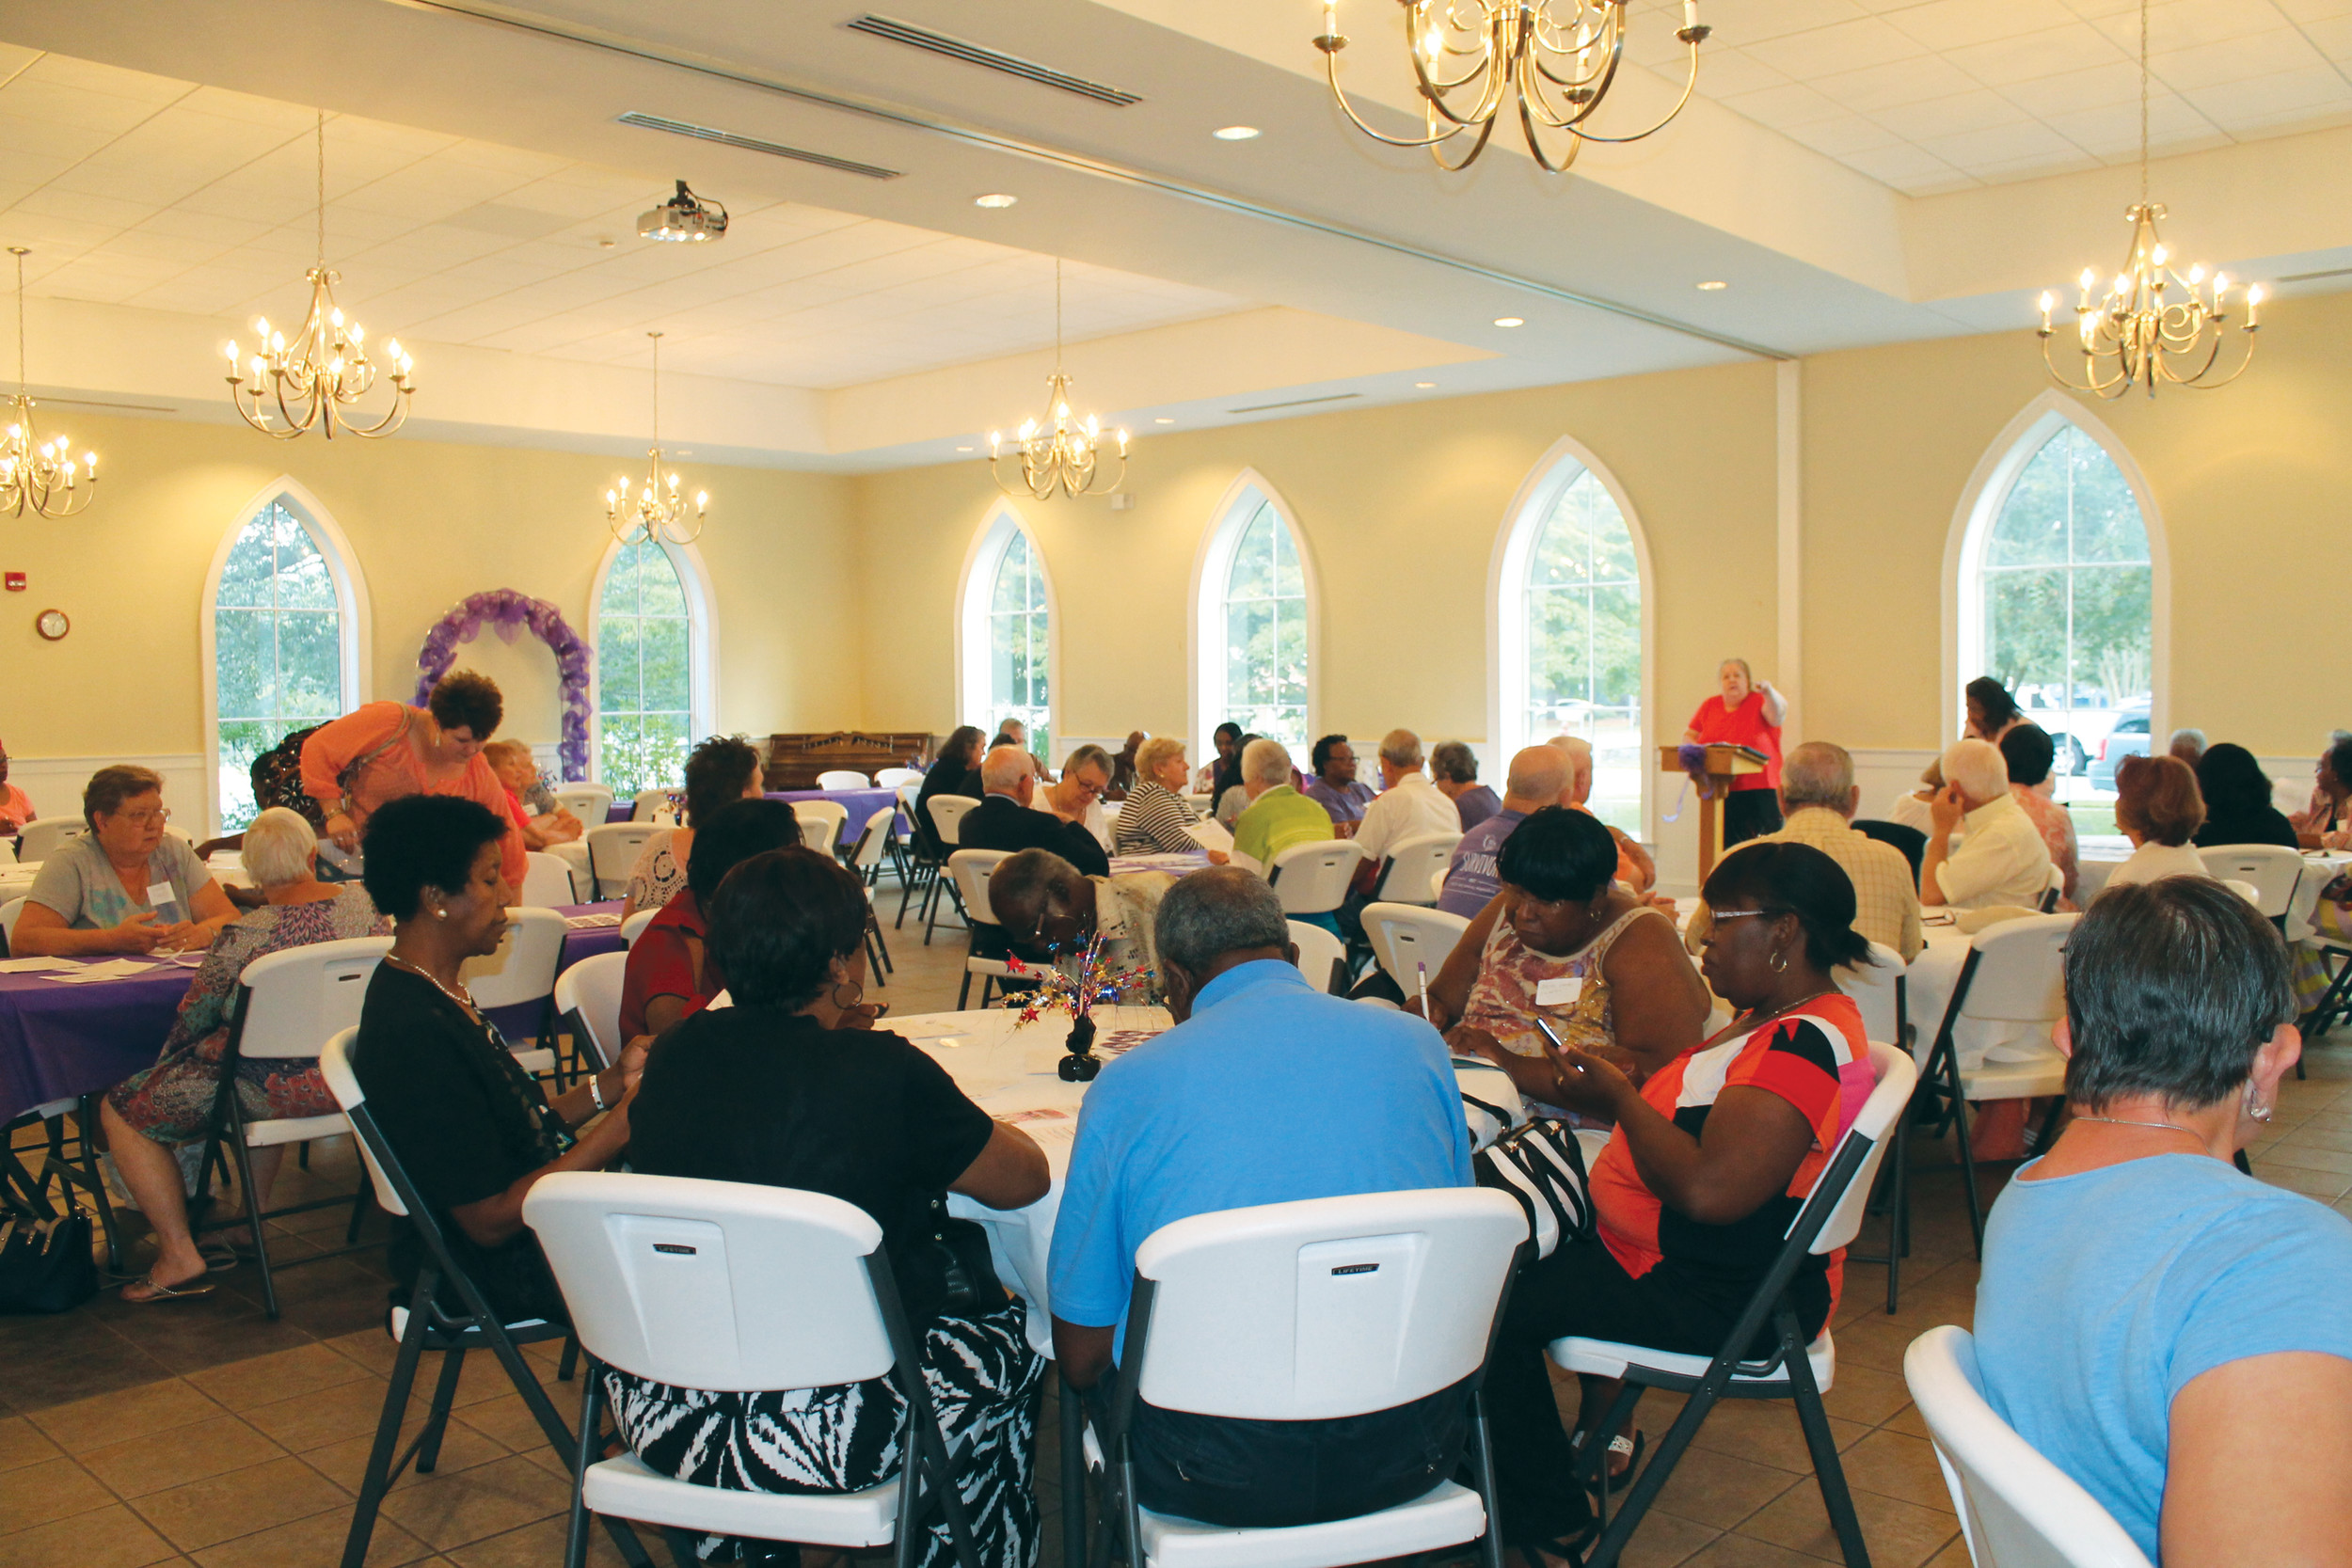 More than 100 cancer survivors, caregivers and guests attended the Celebrate Life Survivor Social held Aug. 31 at Manning United Methodist Church.